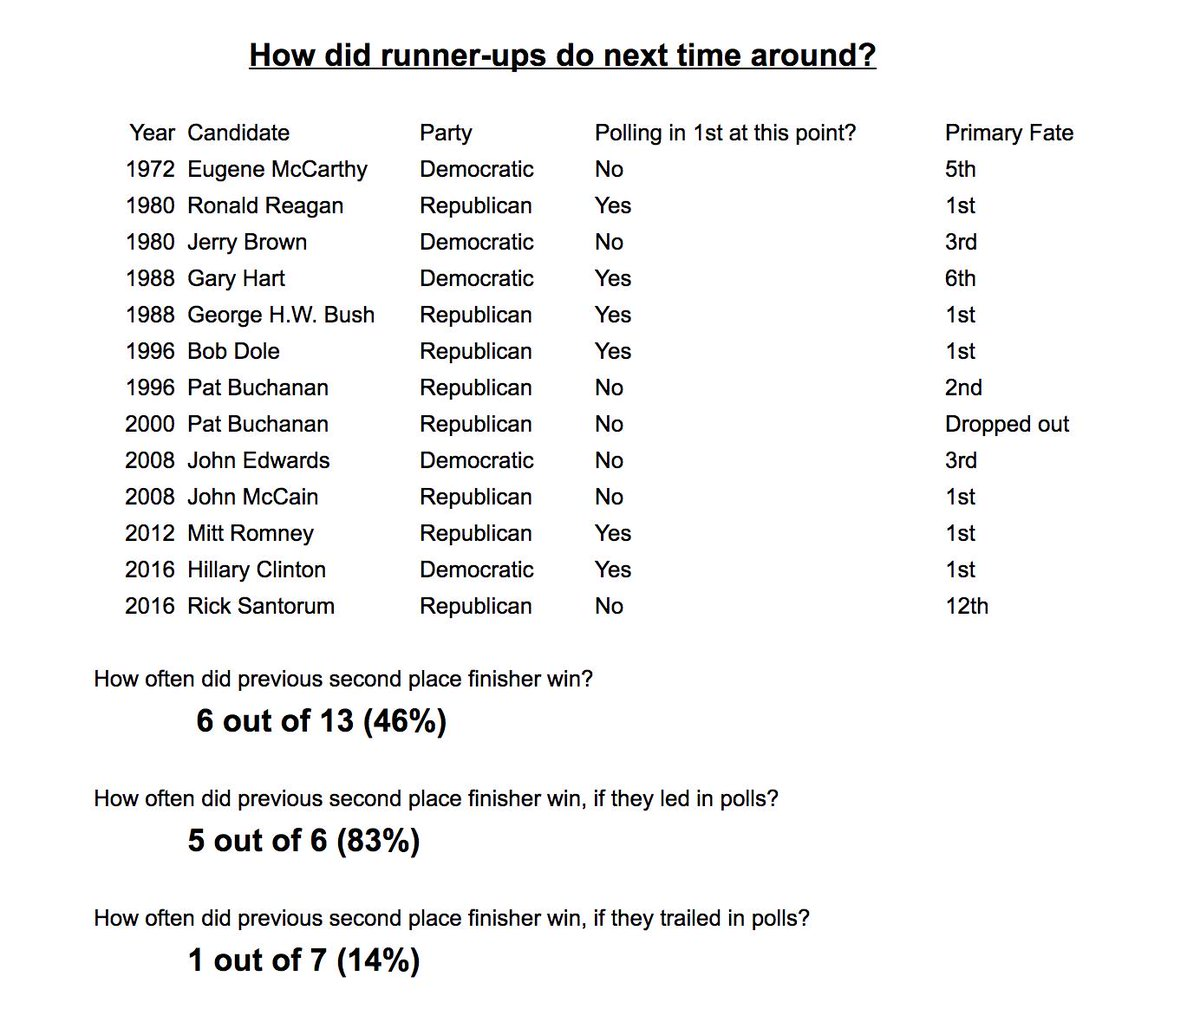 So I updated this by adding McCain (who I left off by accident) and adding whether someone was polling in first at this point (e.g. Romney led in 2012 GOP primary polls at this point). Turns out there may be some predictive/explanatory value there.